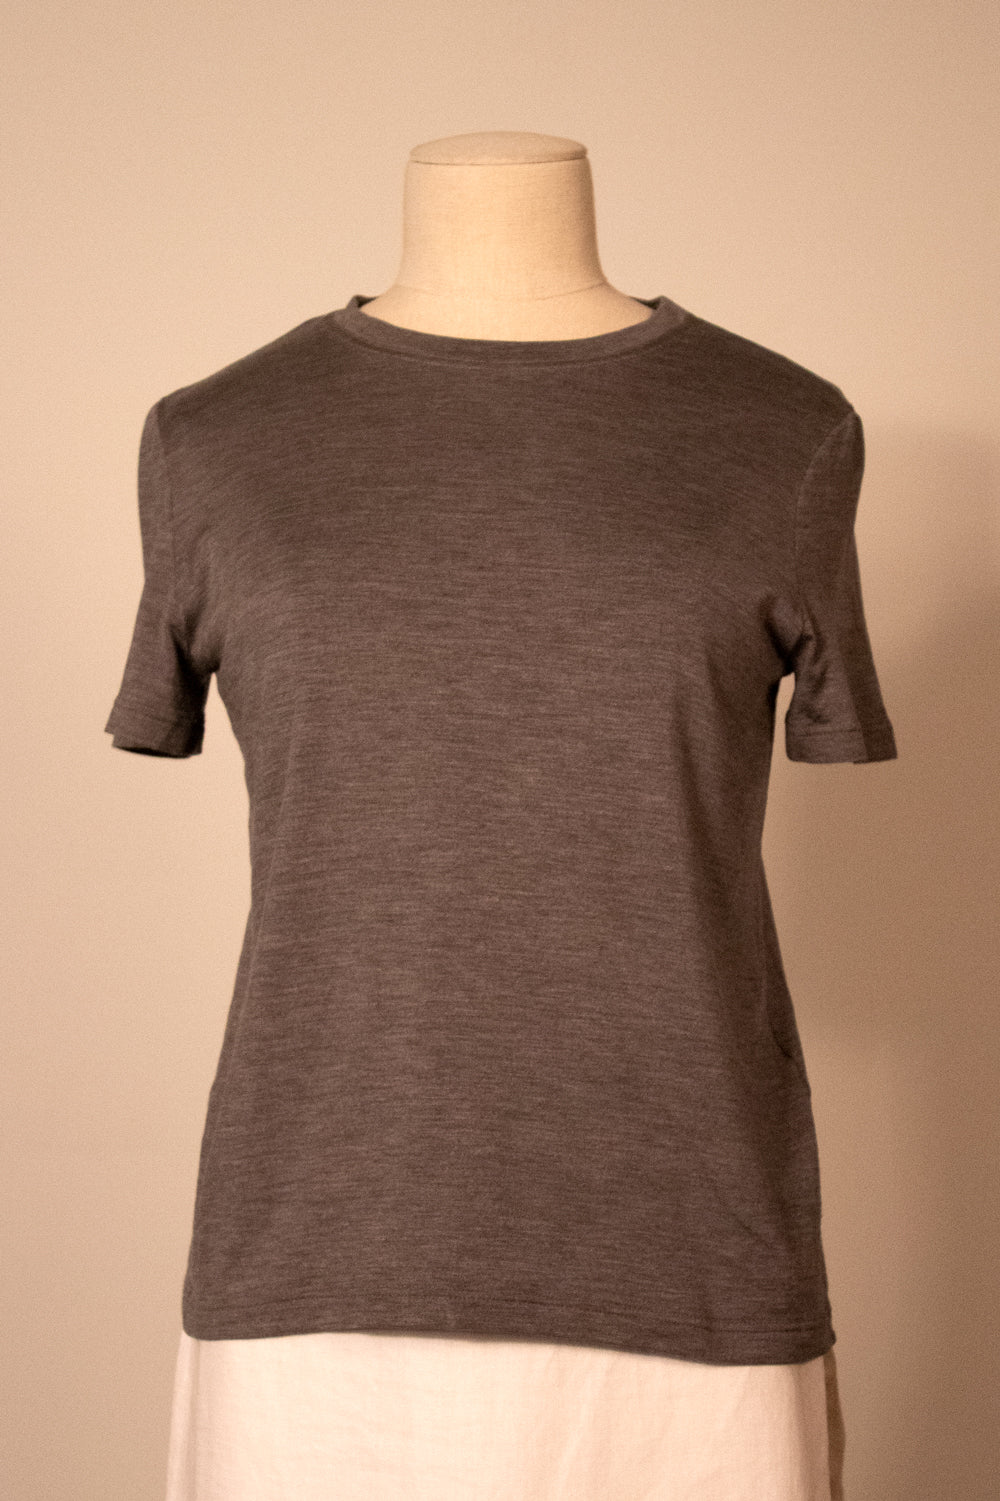 Hermès by Margiela dark gray stretch silk tee